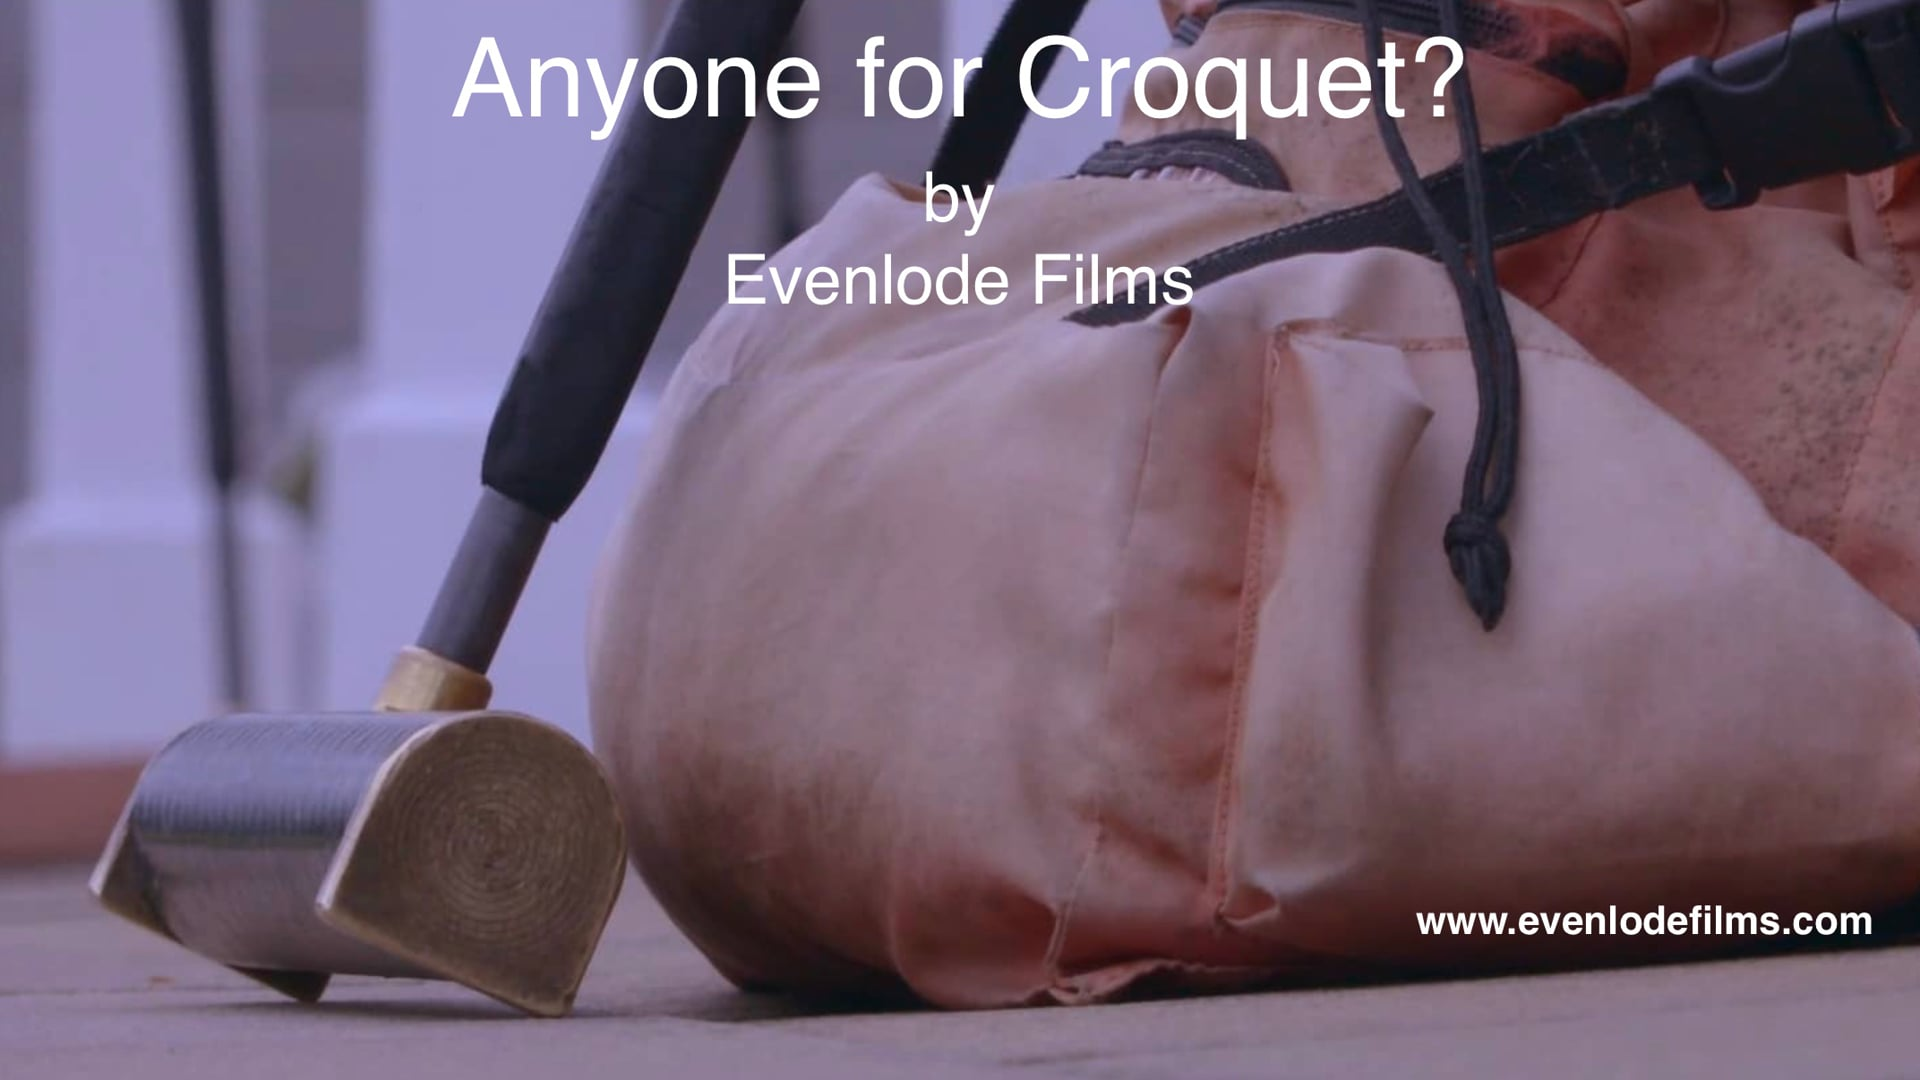 Anyone for Croquet? by Evenlode Films